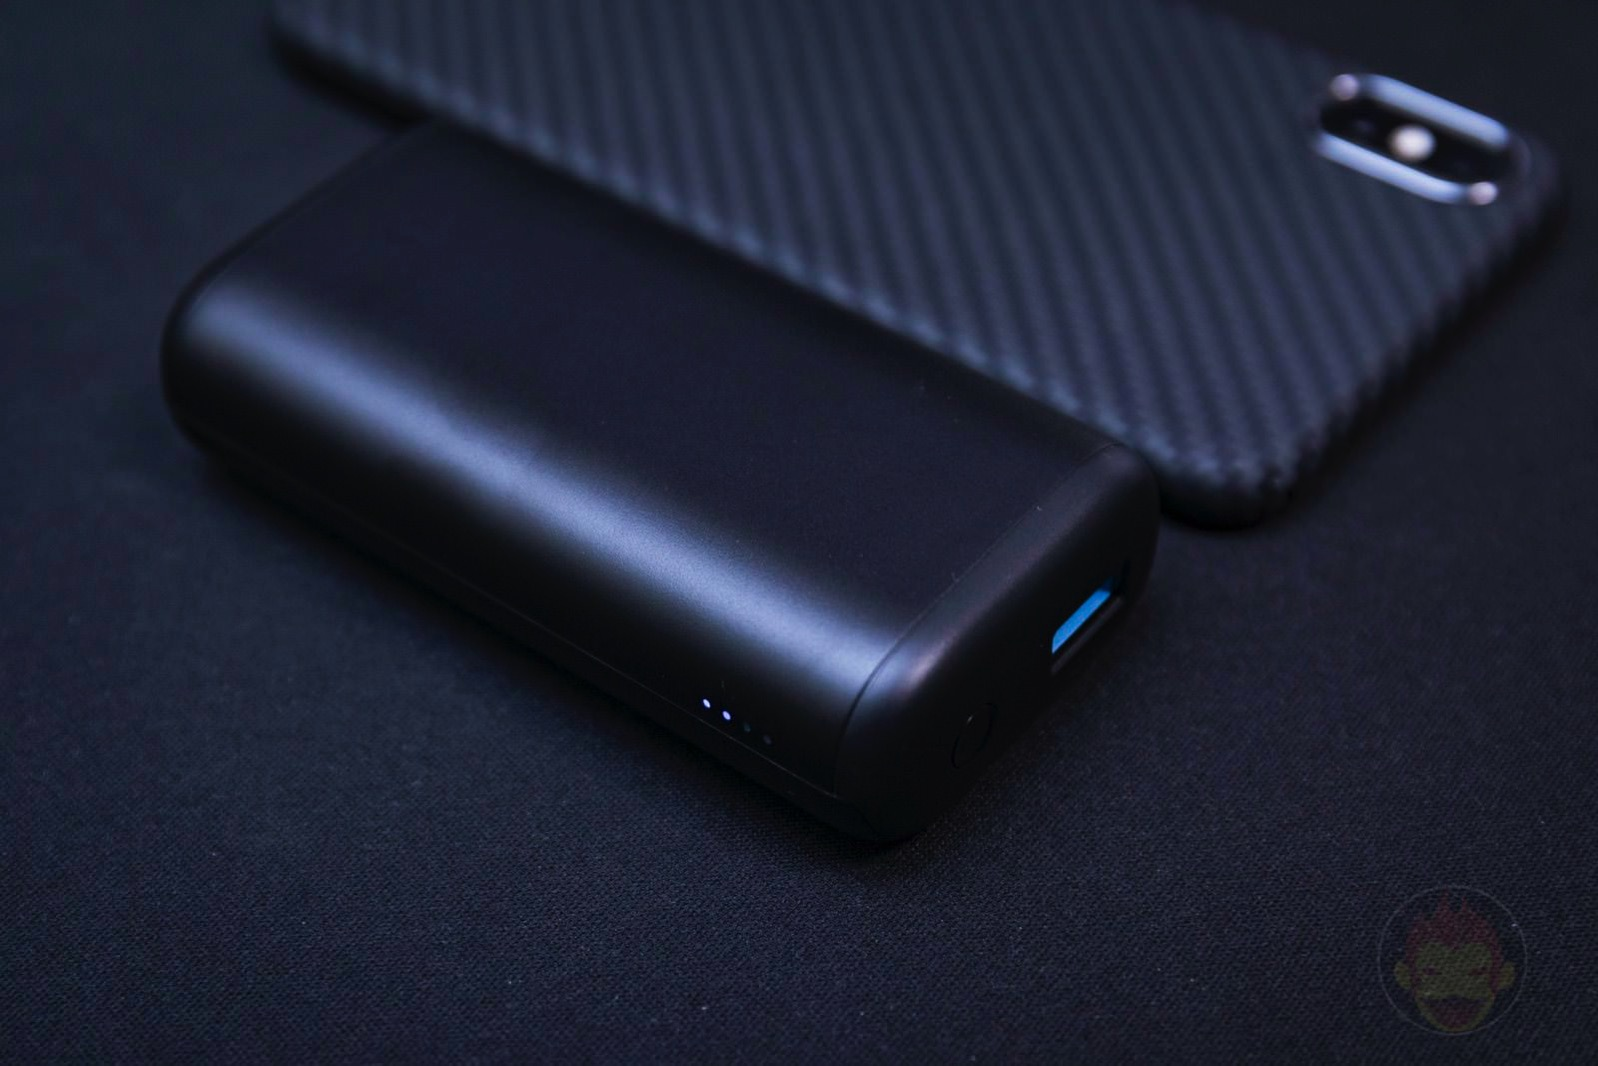 Anker-PowerCore-10000-Redux-Review-09.jpg